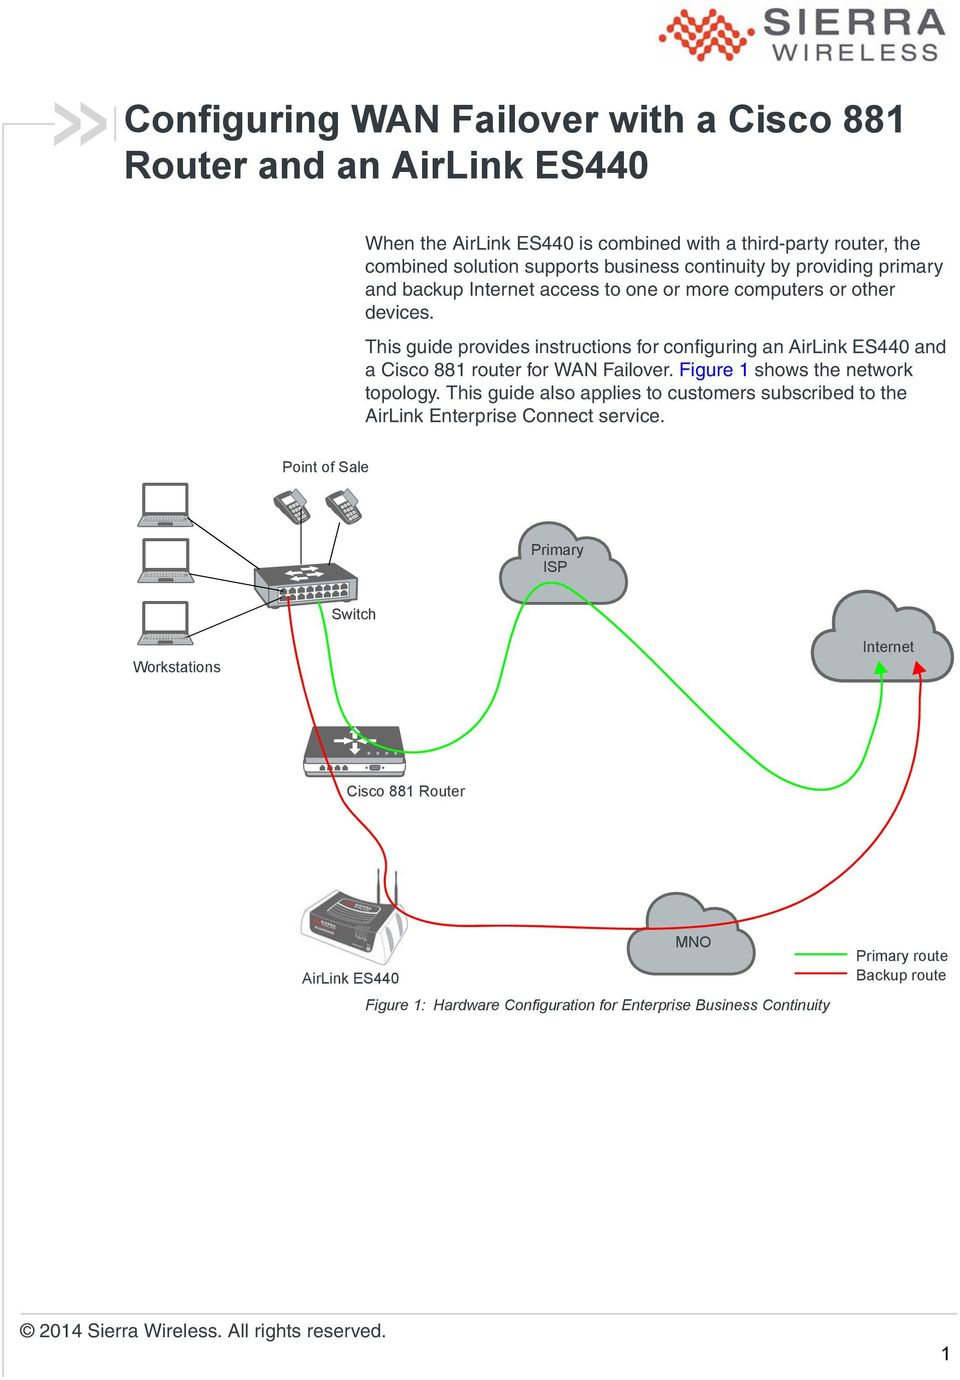 This guide provides instructions for configuring an AirLink ES440 and a Cisco 881 router for WAN Failover. Figure 1 shows the network topology.